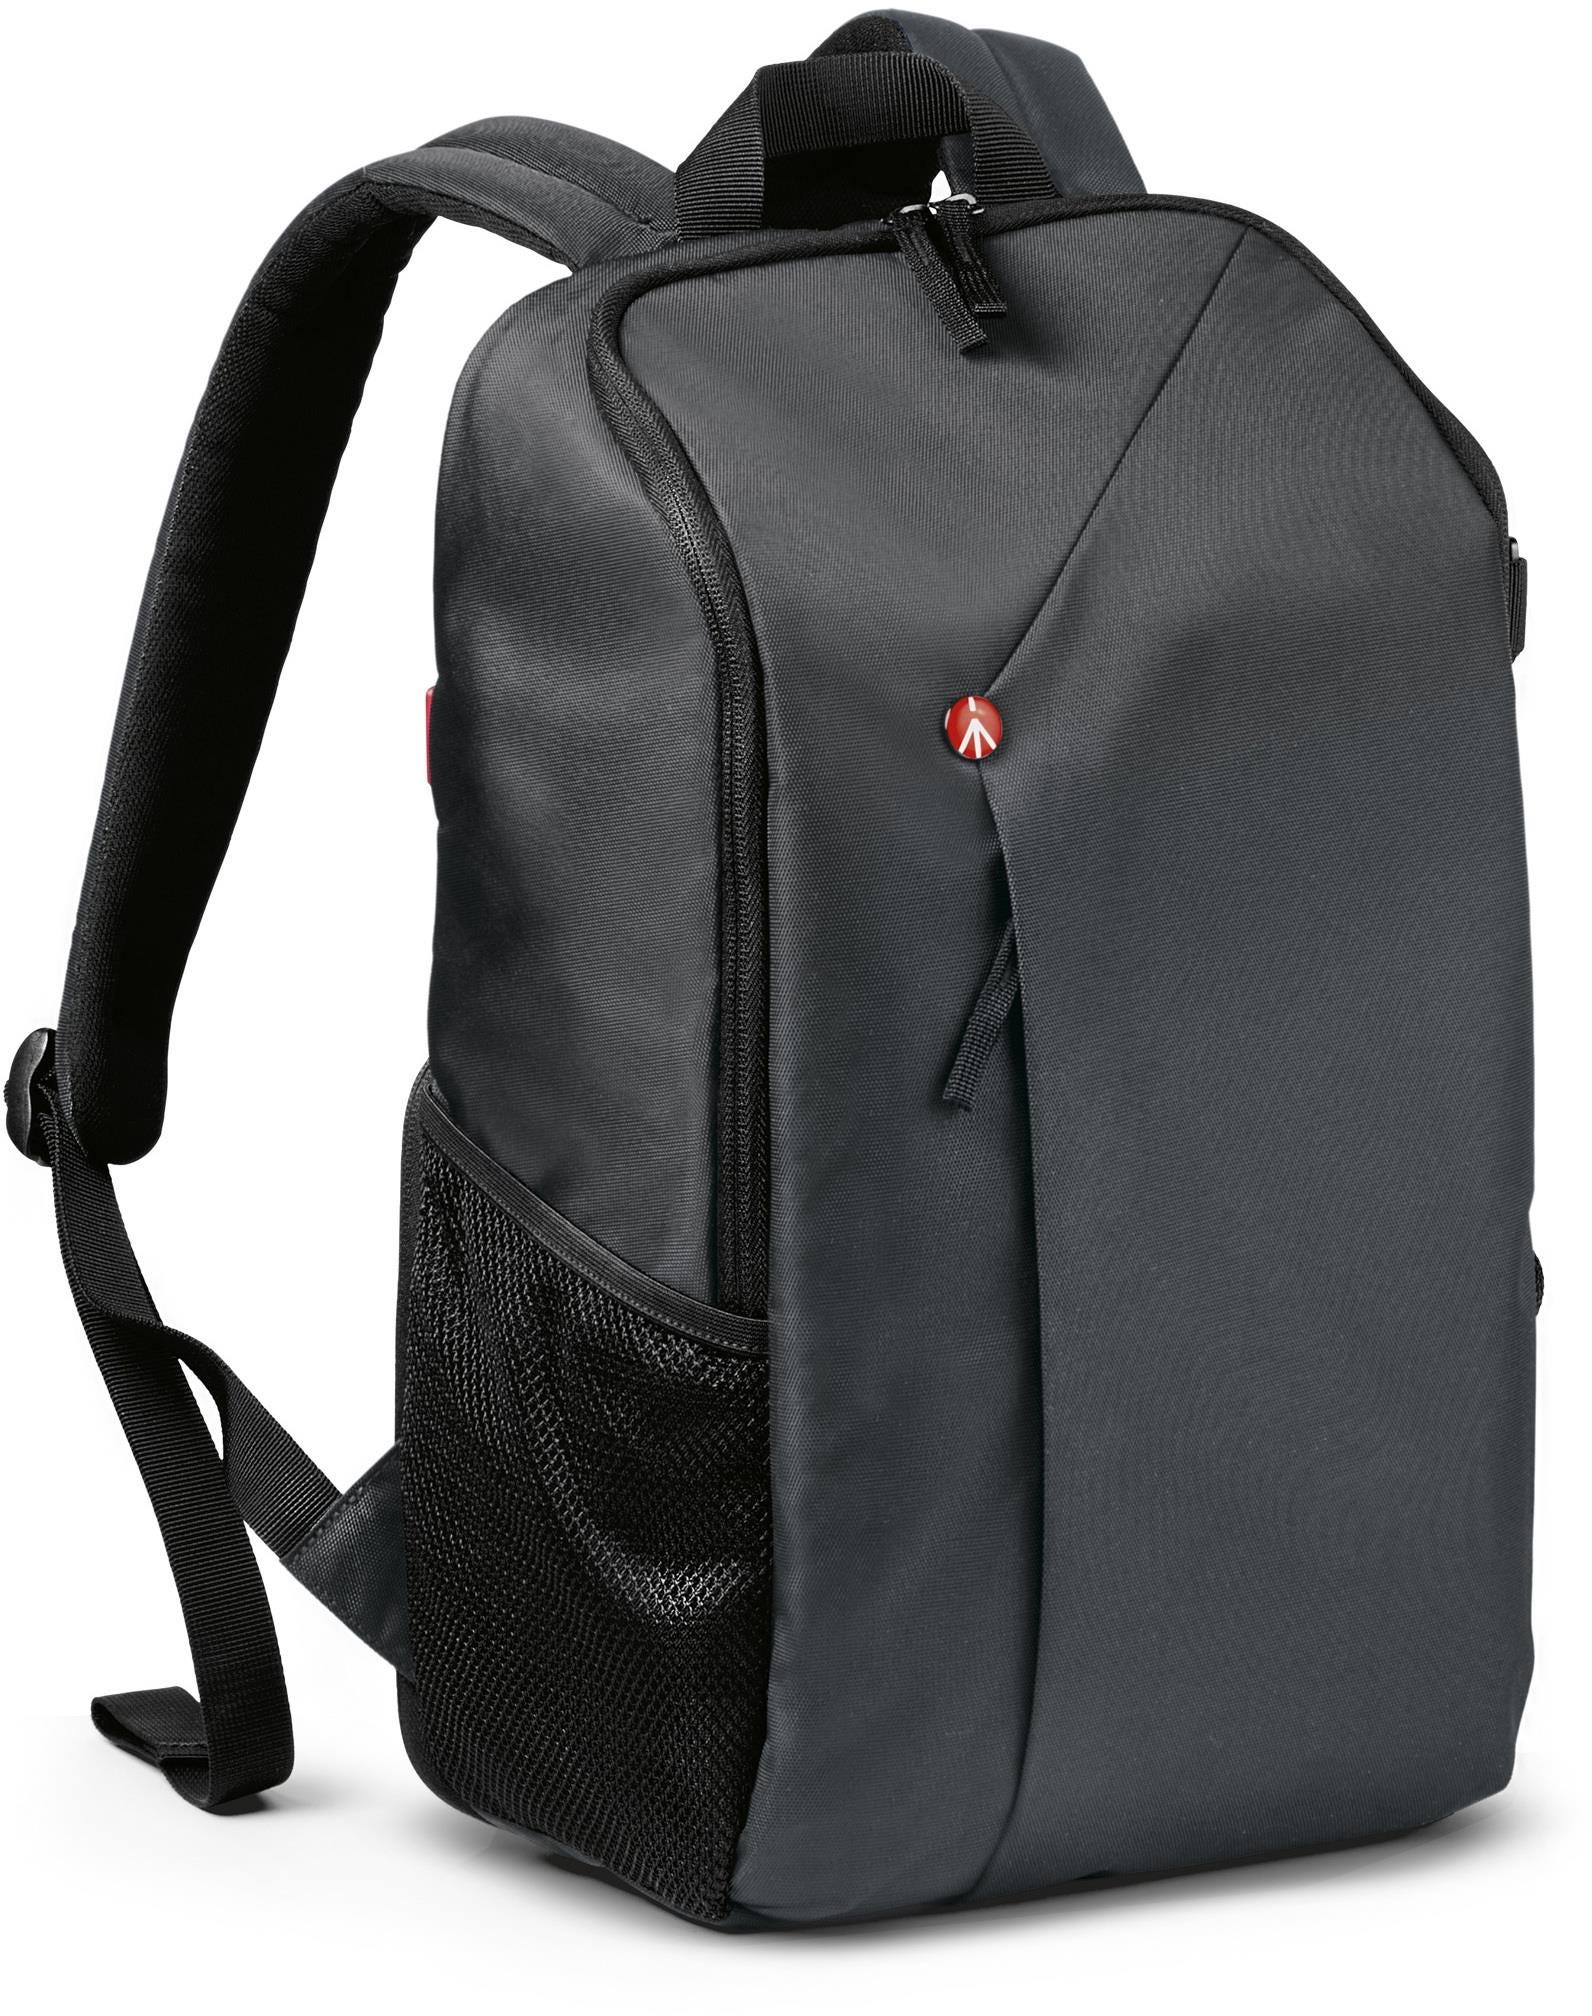 Manfrotto NX Water-Repellent DJI Mavic Pro Drone / CSC Camera Backpack - Grey